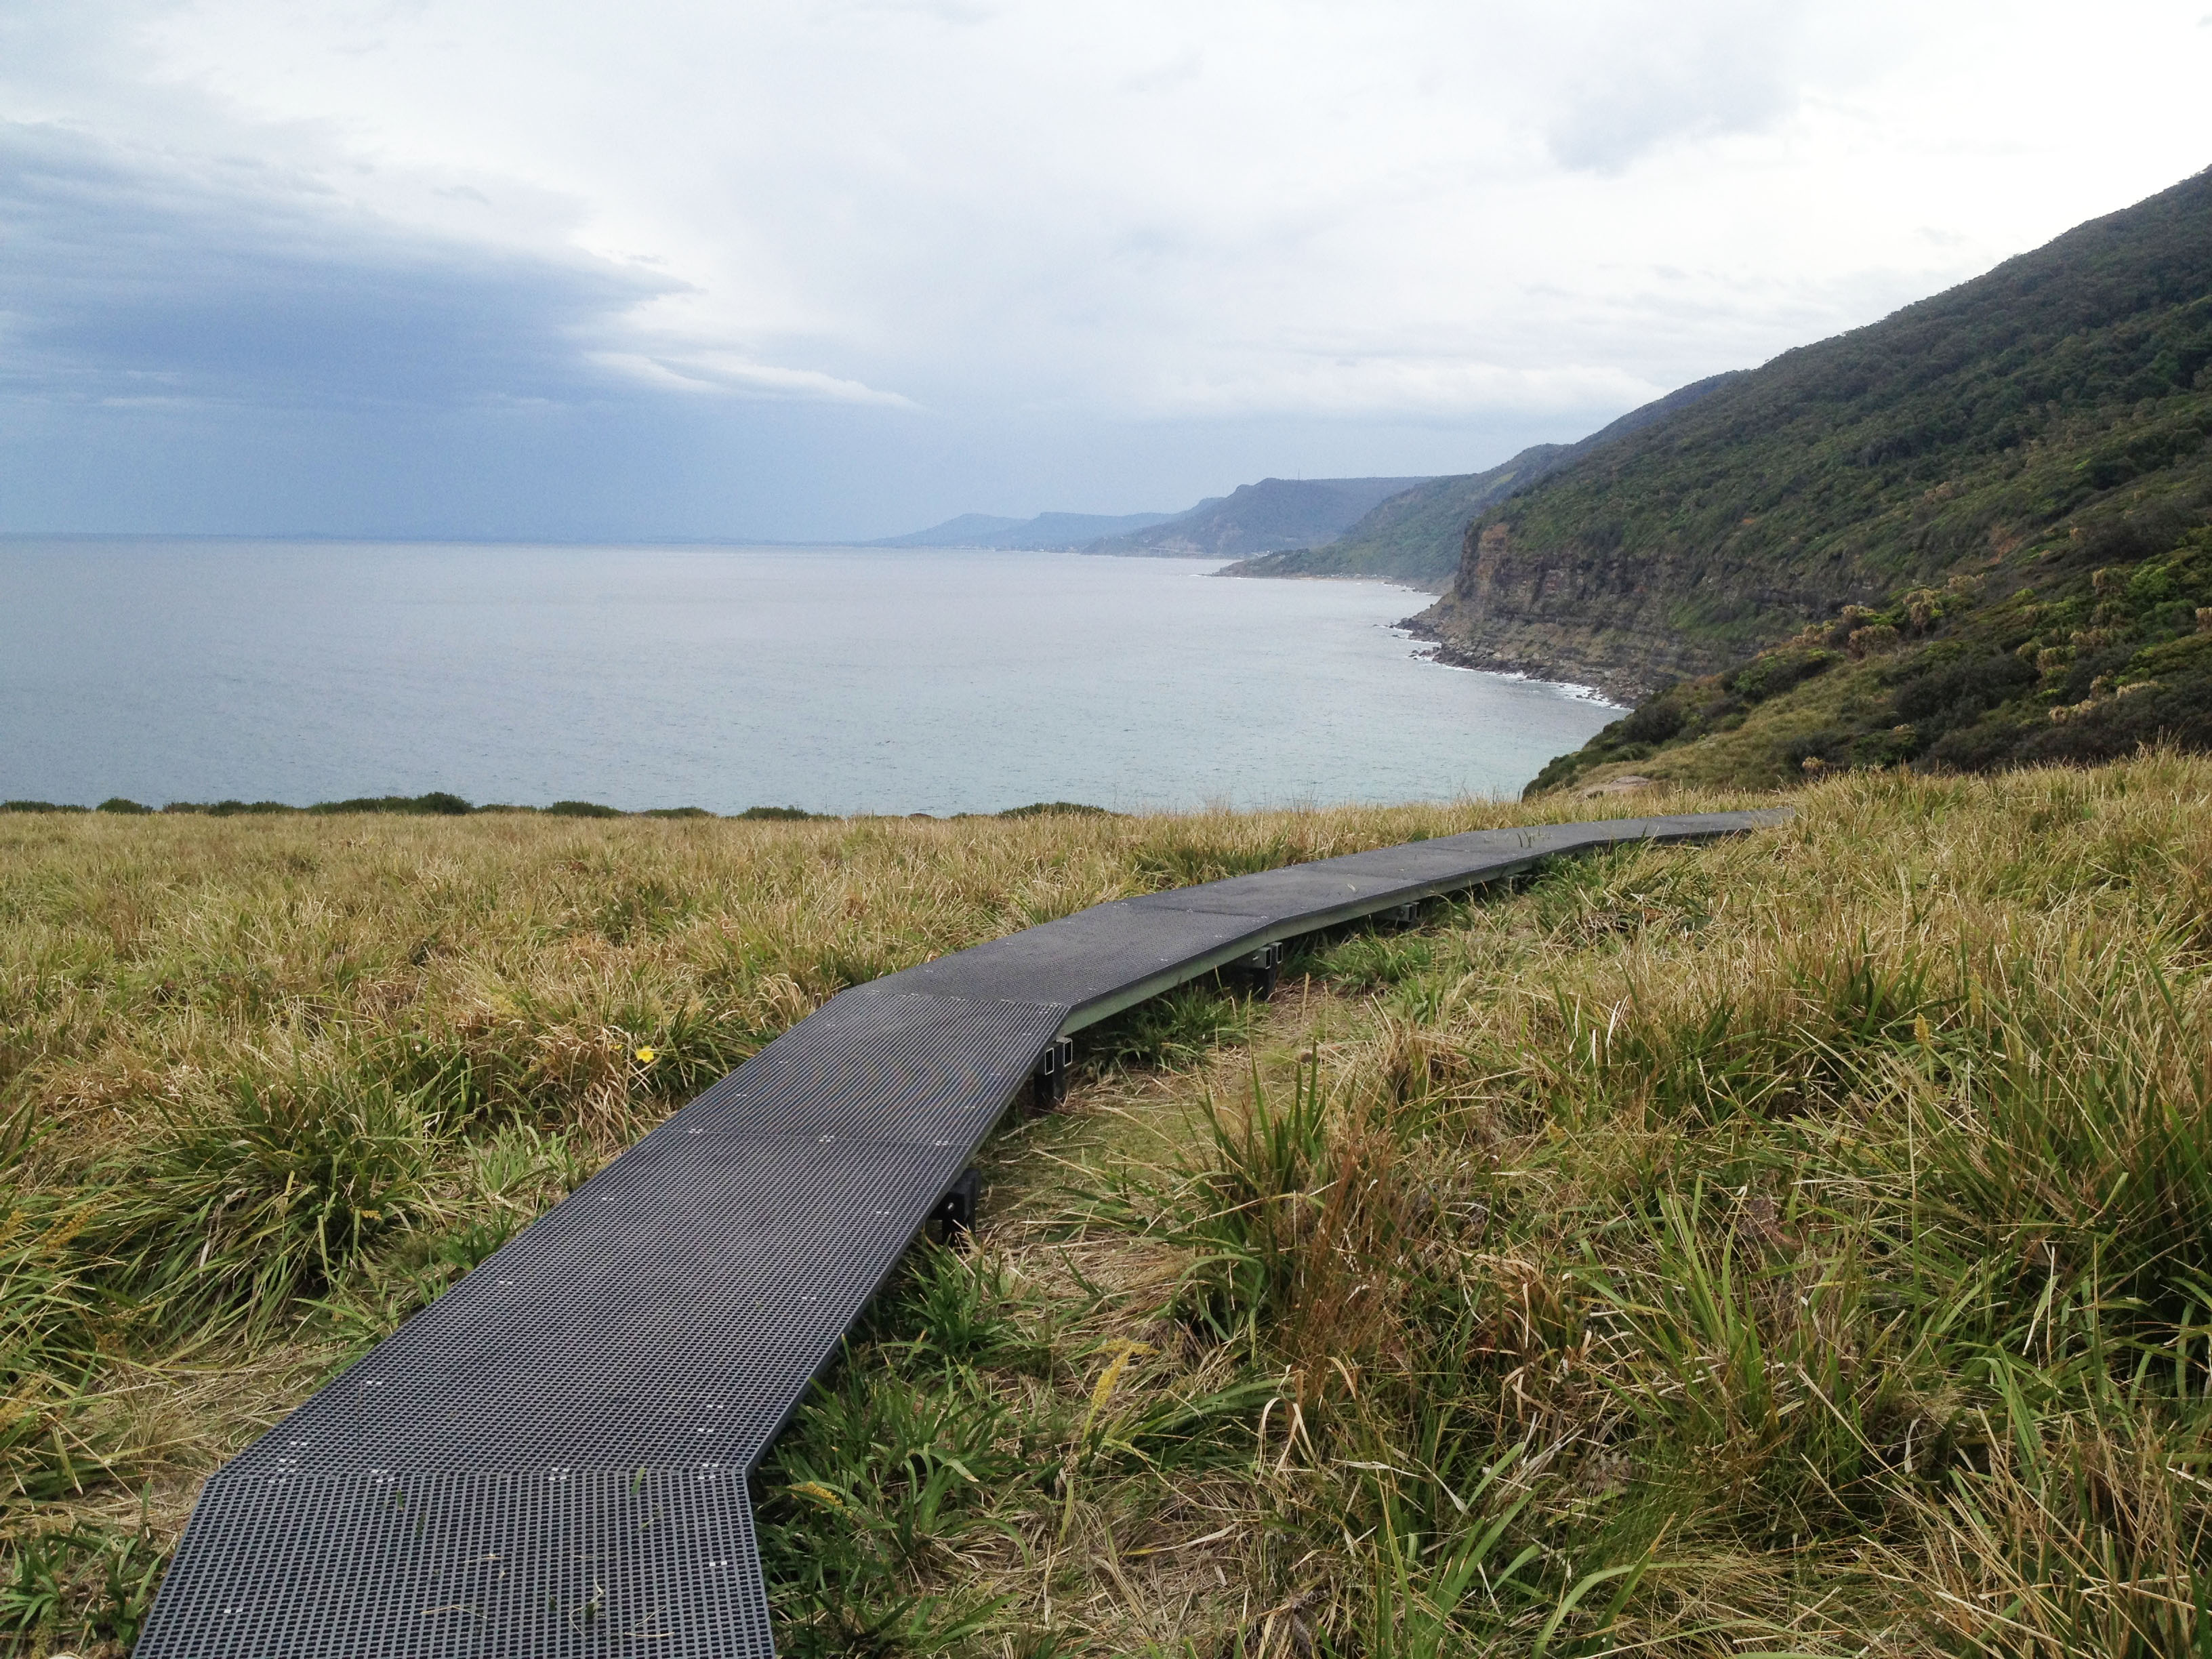 Coast walk boardwalk